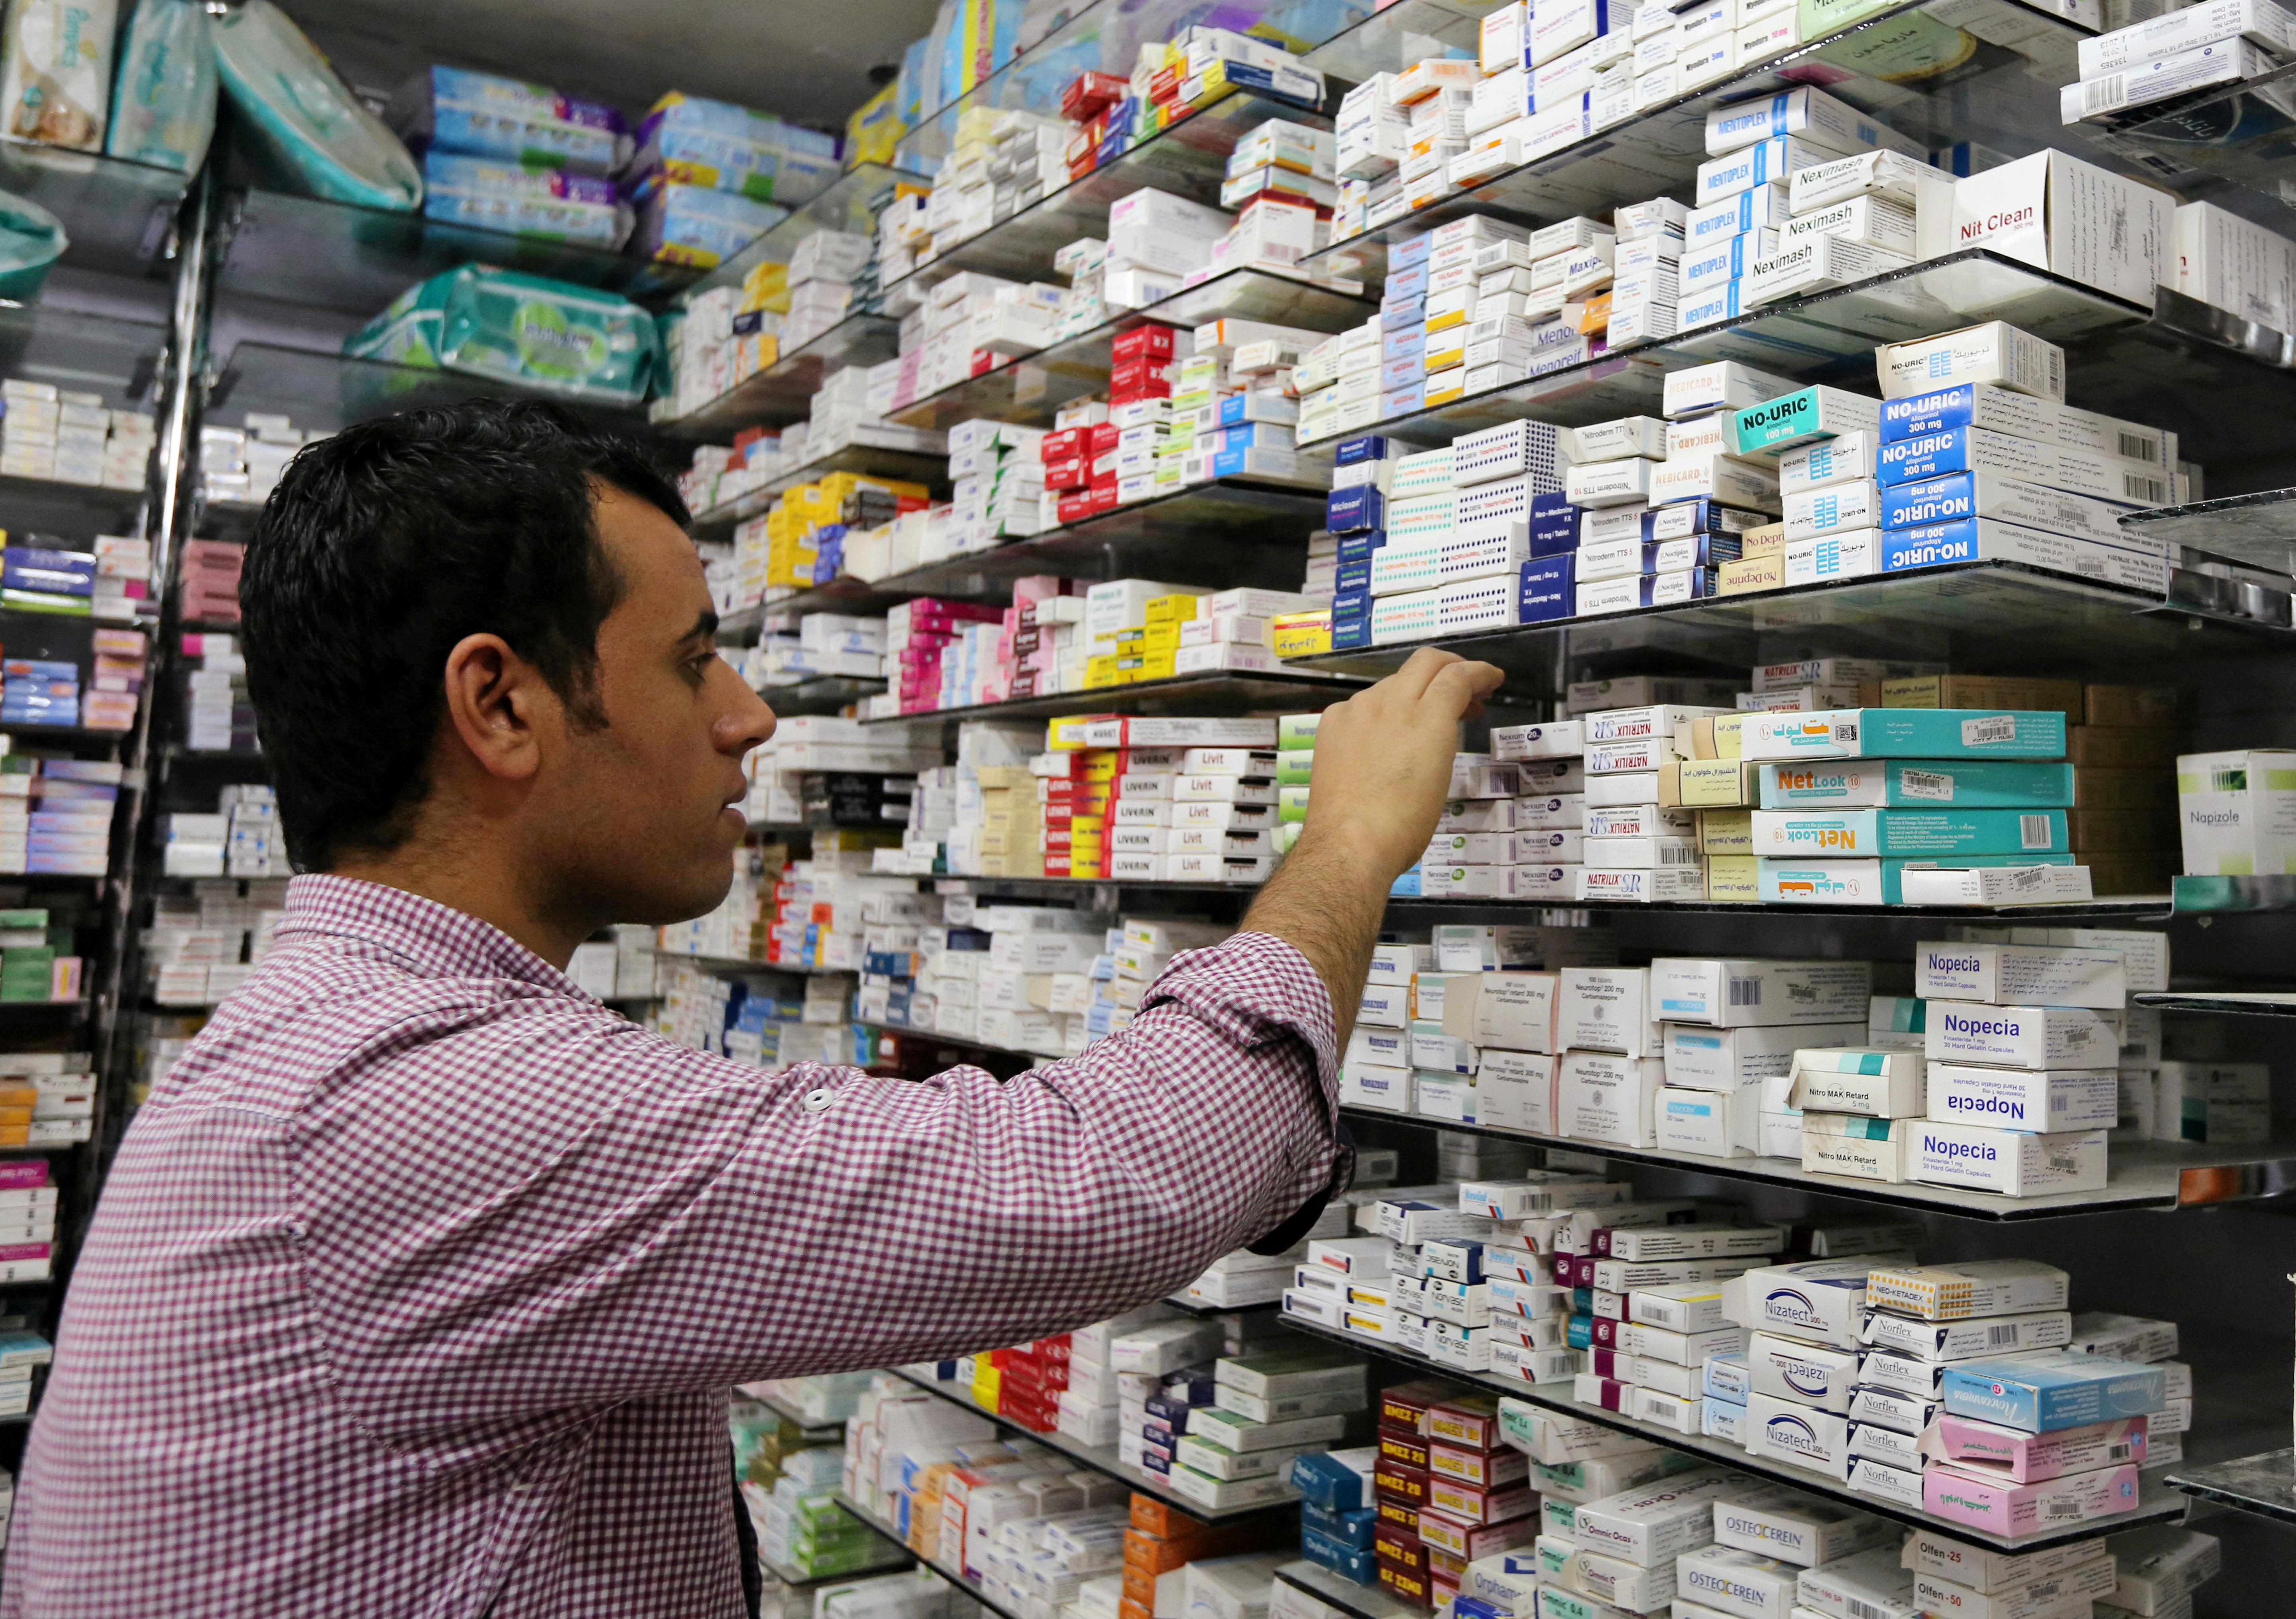 Egypt Crisis: Medicine Shortages Rise As Currency Values Fall In Unstable Country